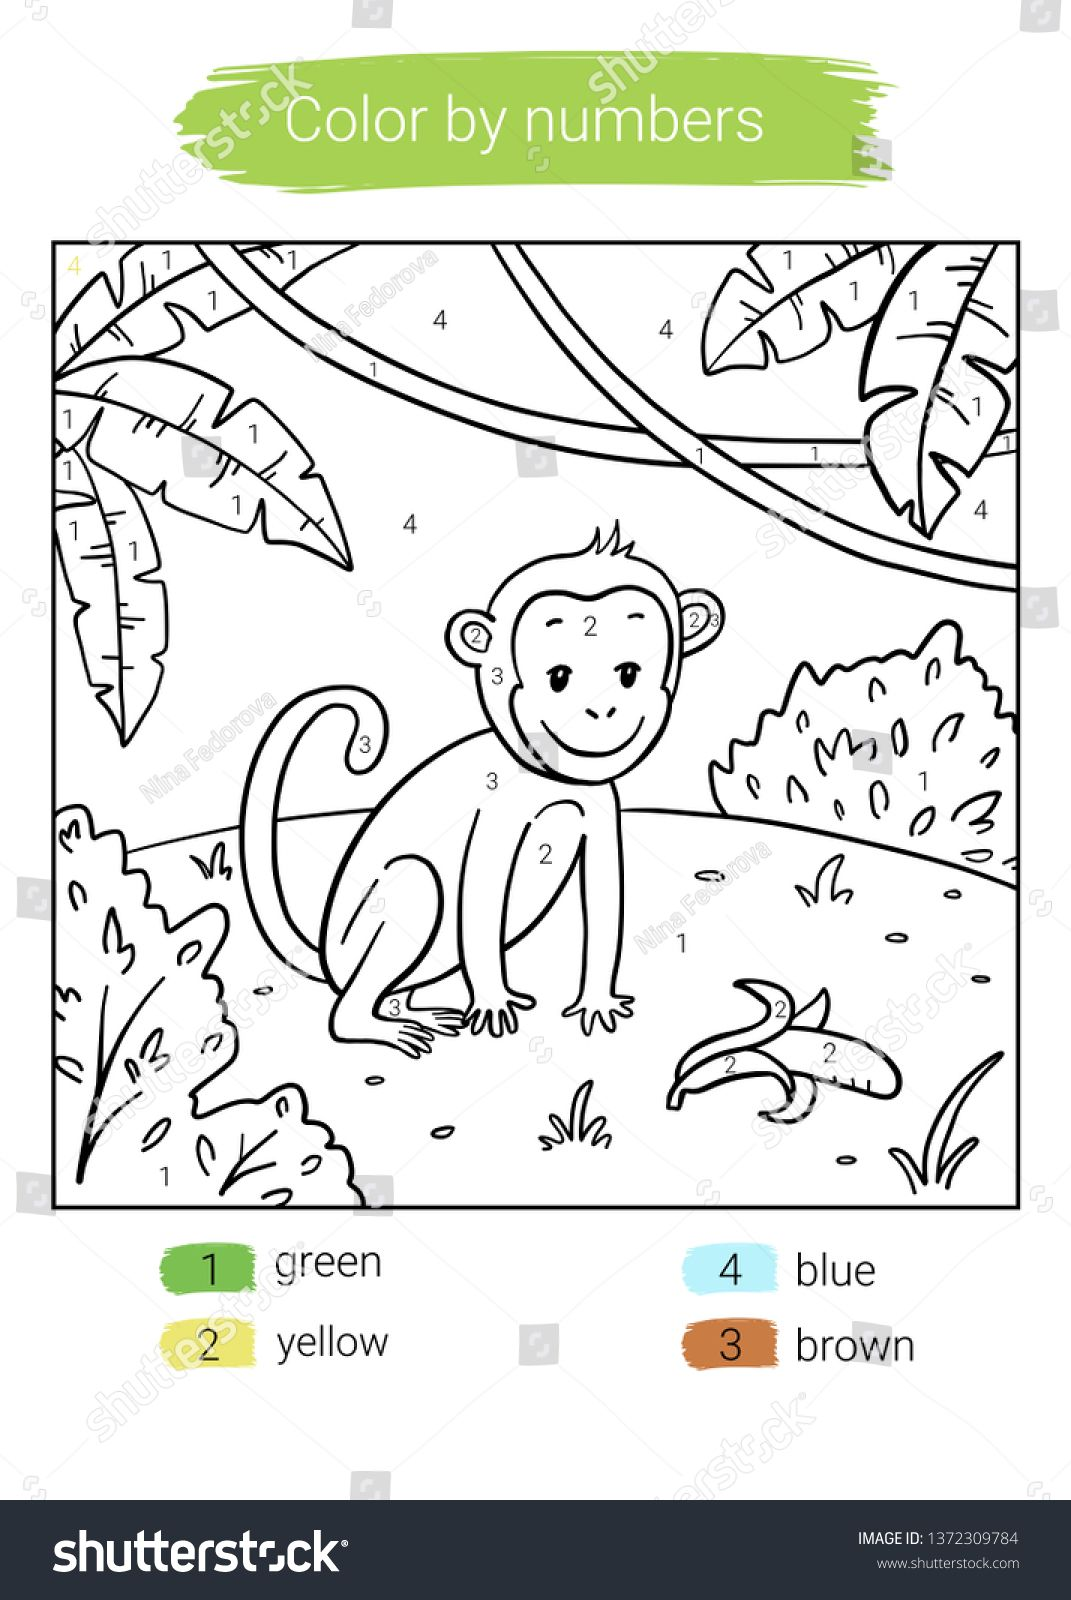 Color By Number Monkey Educational Children Game Coloring Book Ad Spon Monkey Educational Color Numbe Coloring Books Color By Numbers Abstract Design